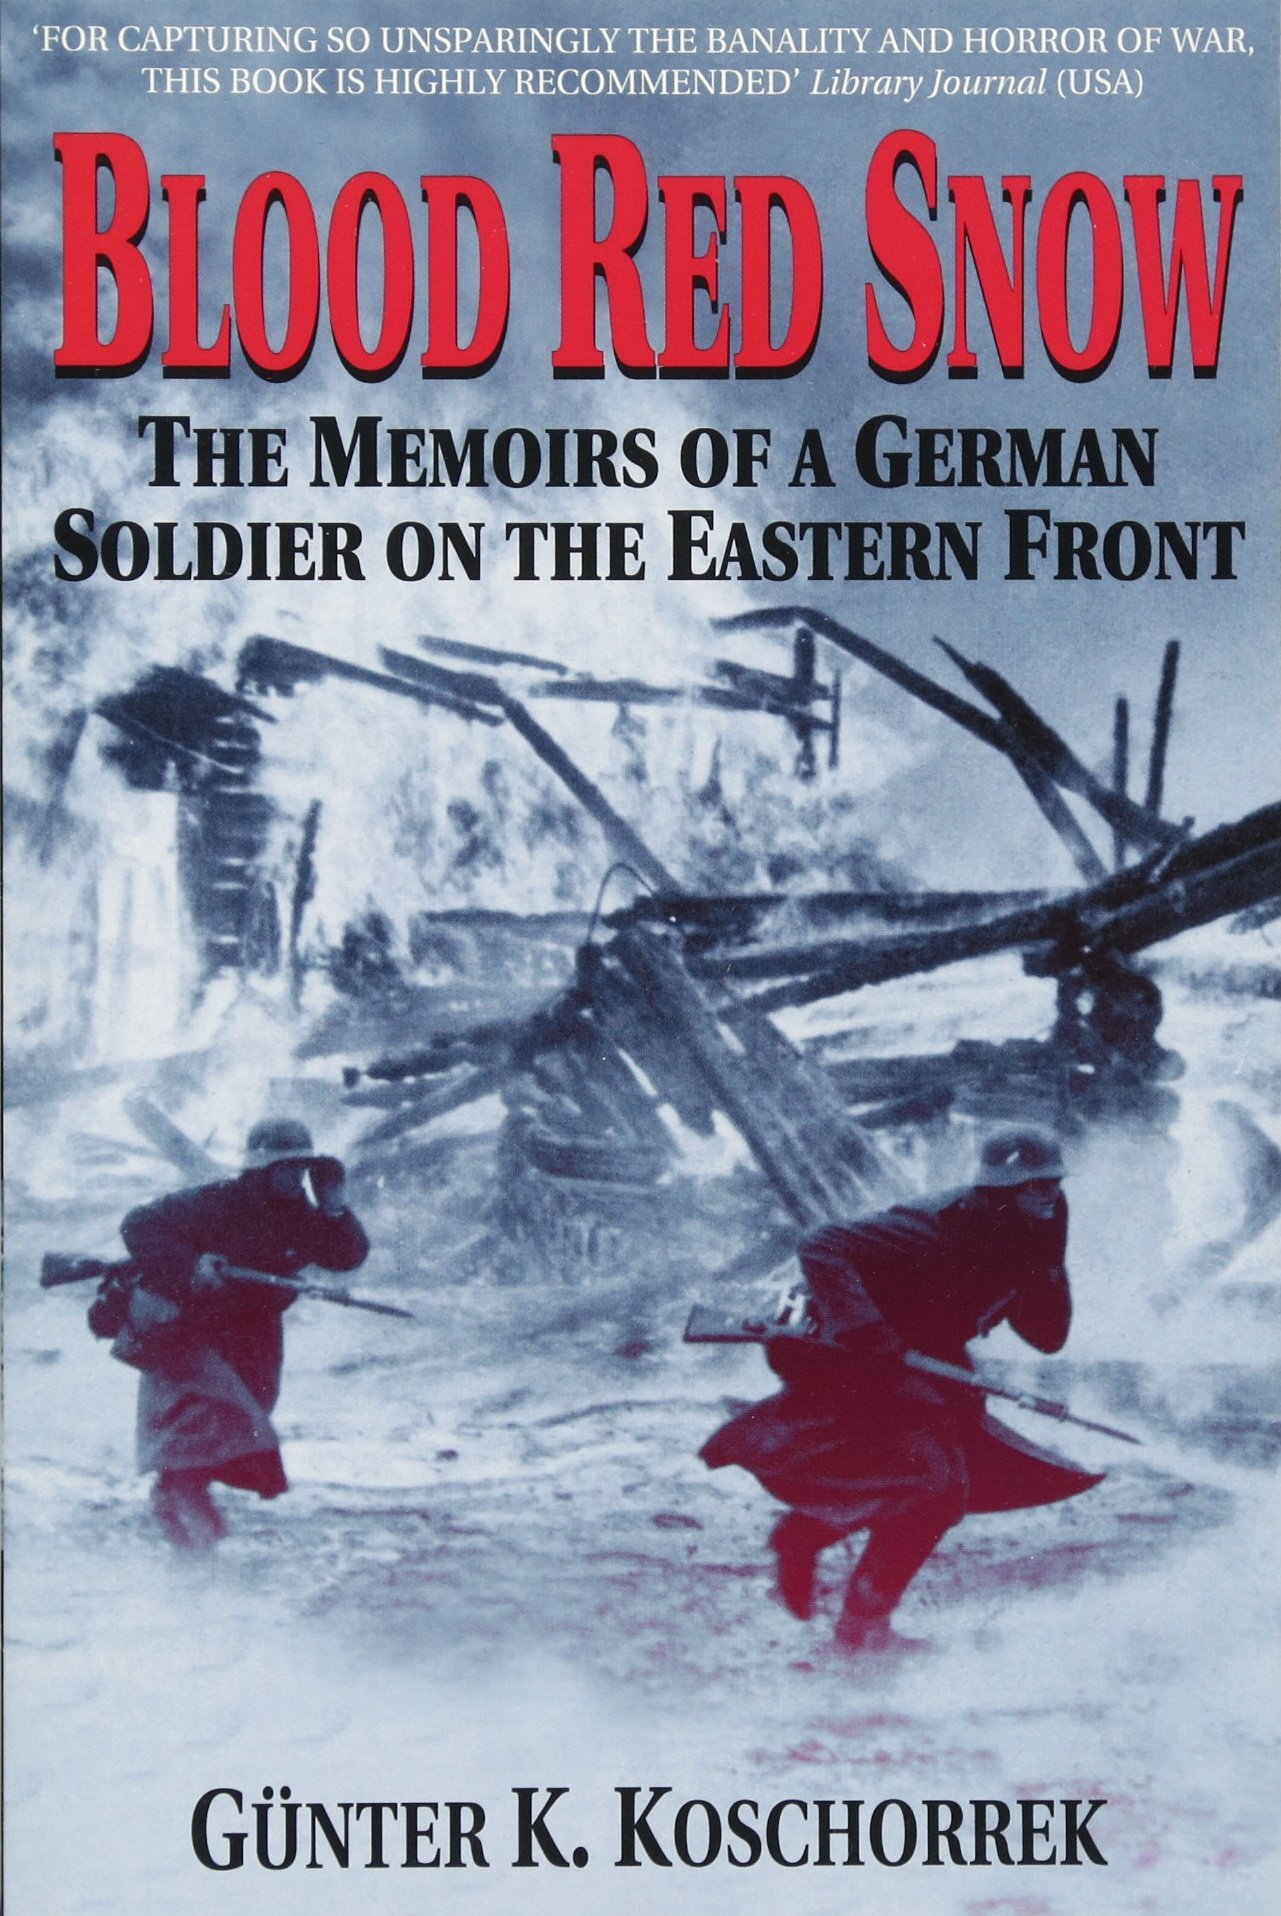 German customer account create/downloader - Blood Red Snow The Memoirs Of A German Soldier On The Eastern Front Gunter Koschorrek 0752748321984 Amazon Com Books